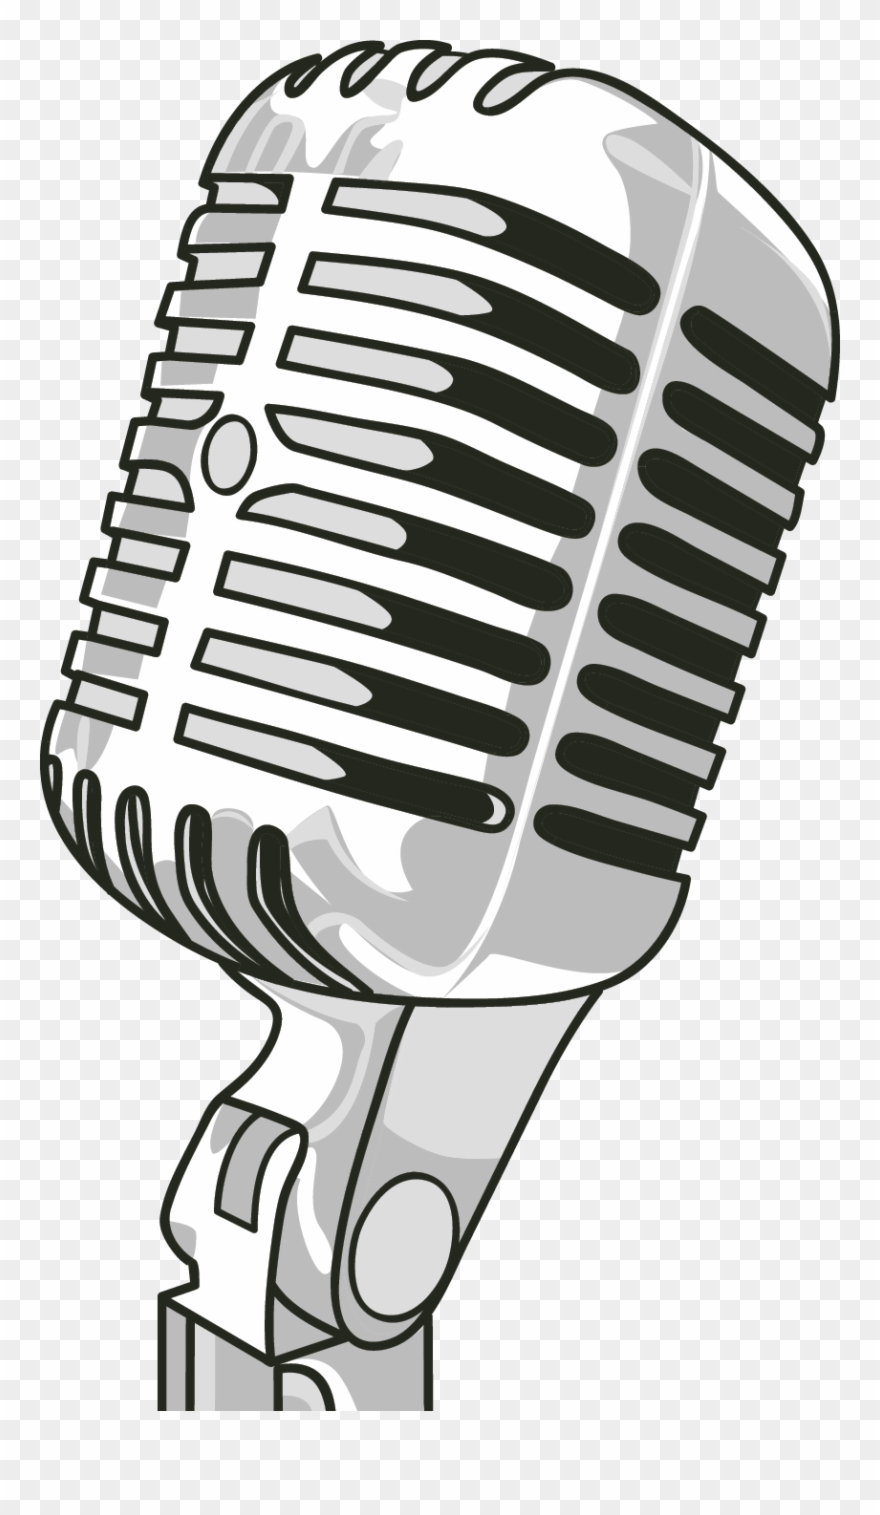 Radio mic clipart clipart images gallery for free download.